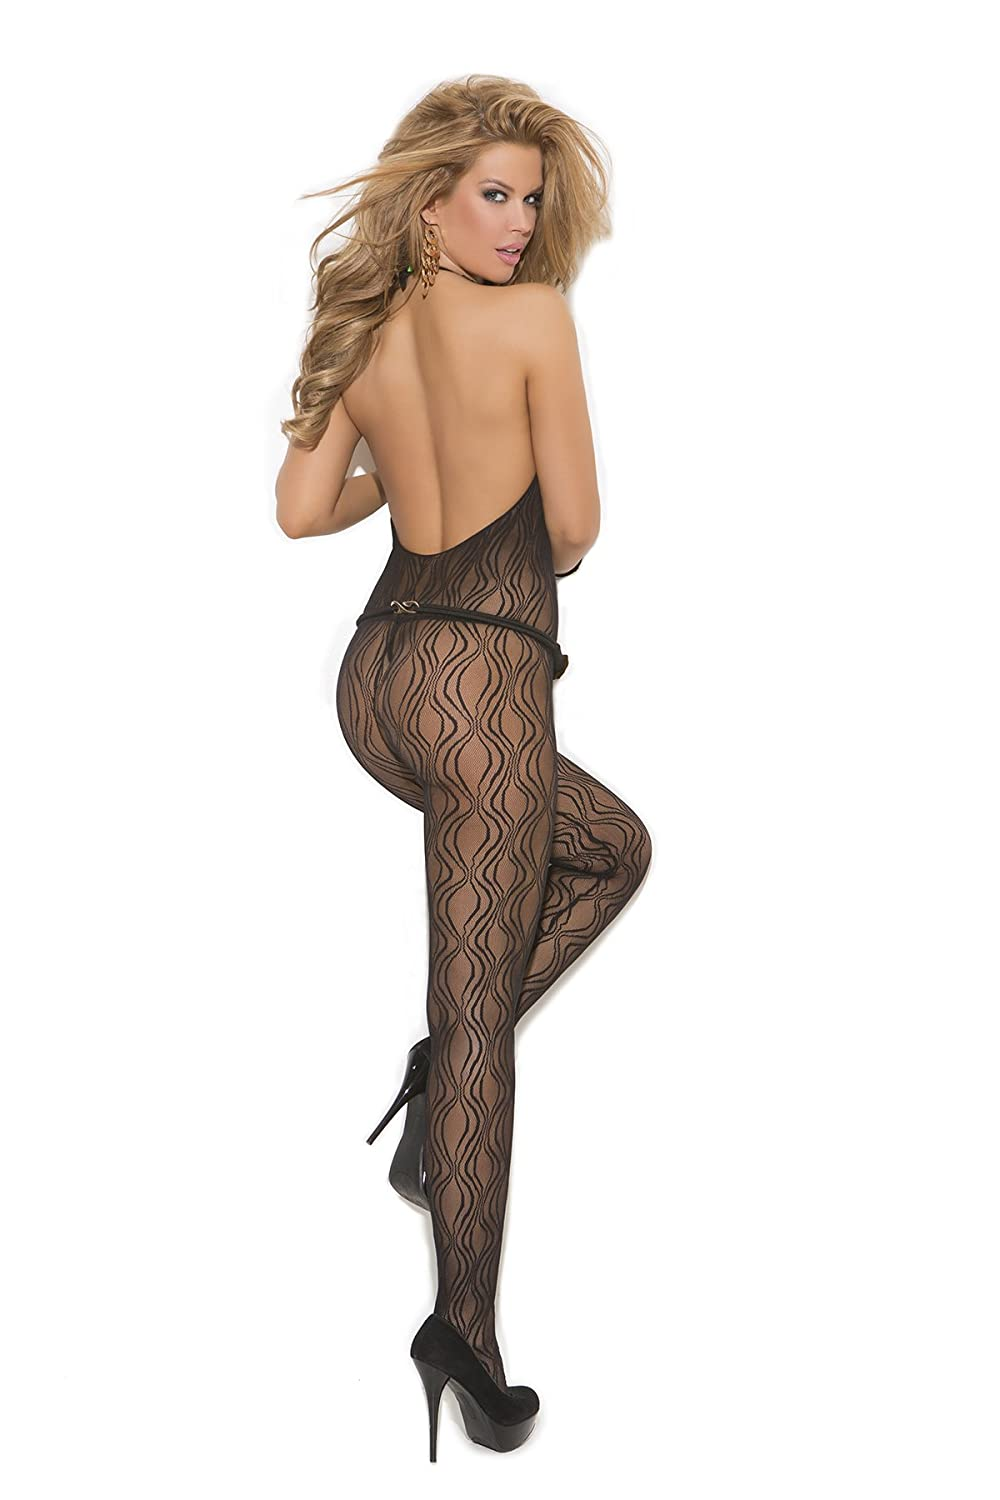 7b62883db7d Amazon.com  Sexy Women s Swirl Lace Halter Style Open Crotch Bodystocking  One Piece Lingerie  Clothing